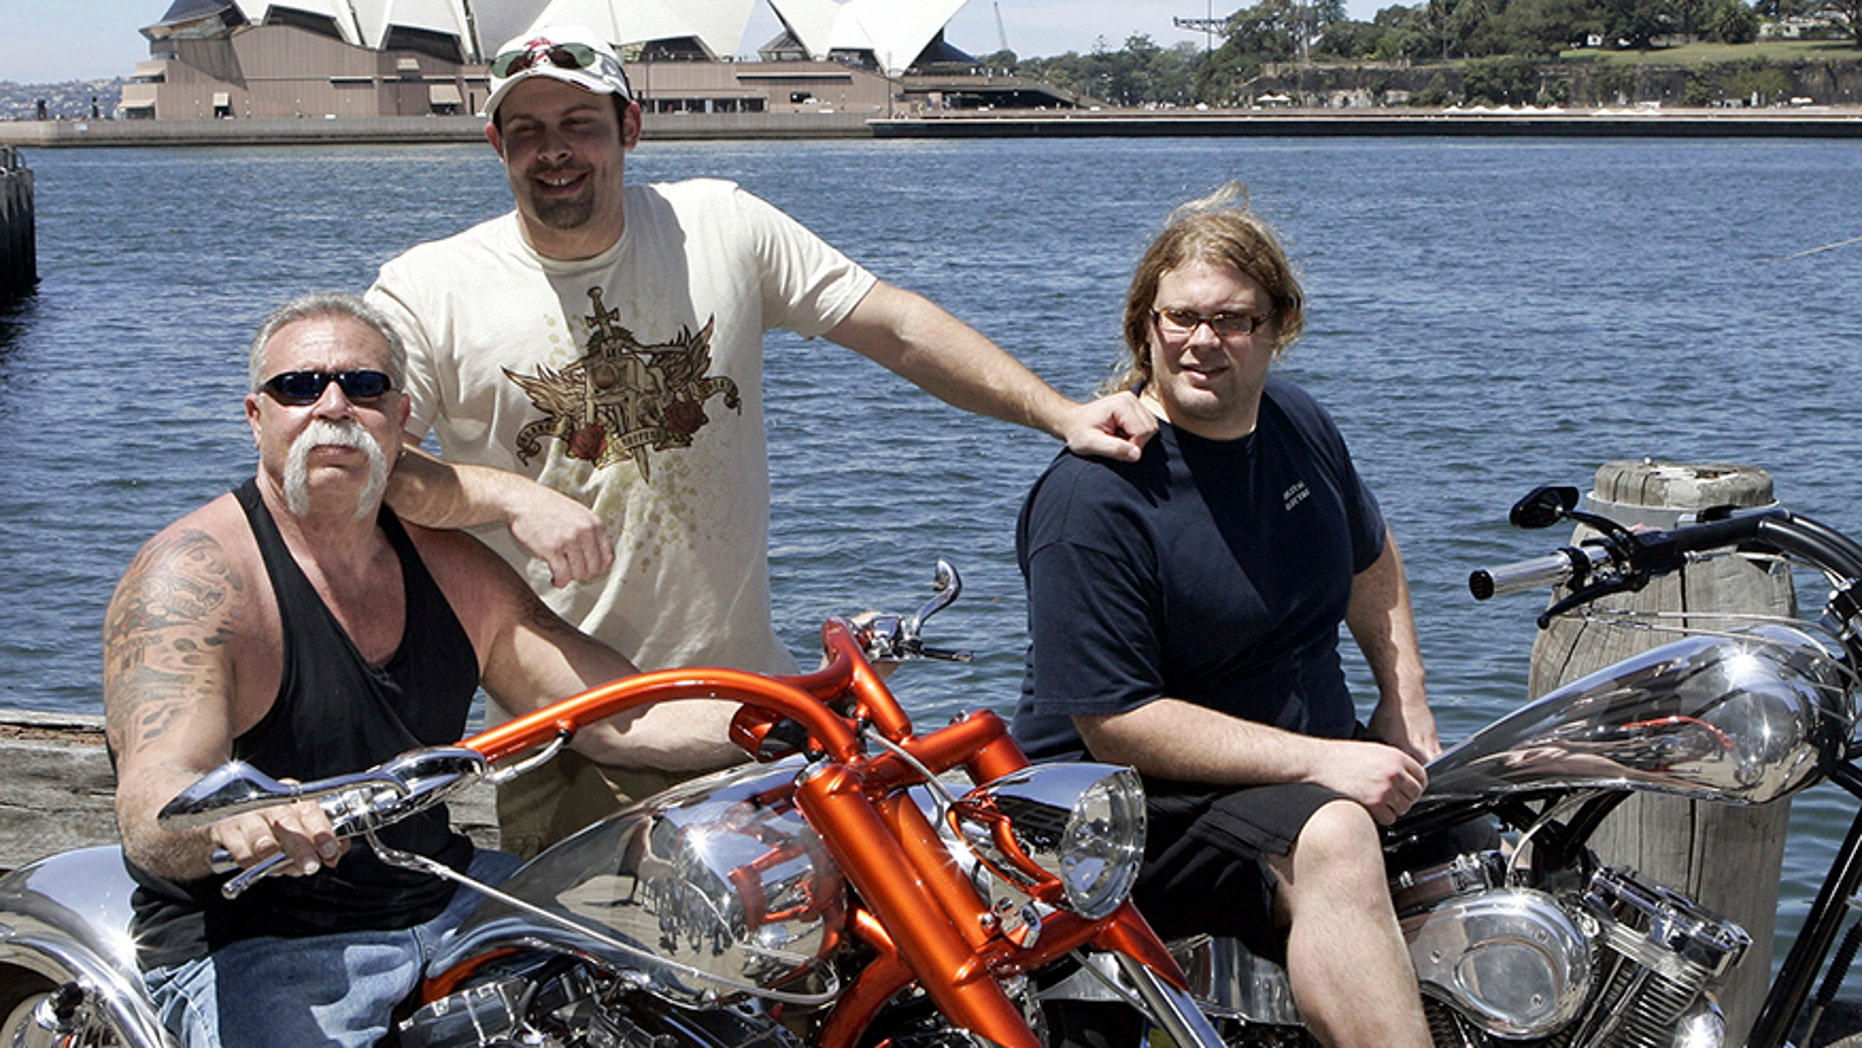 Discovery Channel Revives American Chopper After 5 Years Fox News Choppers Australia